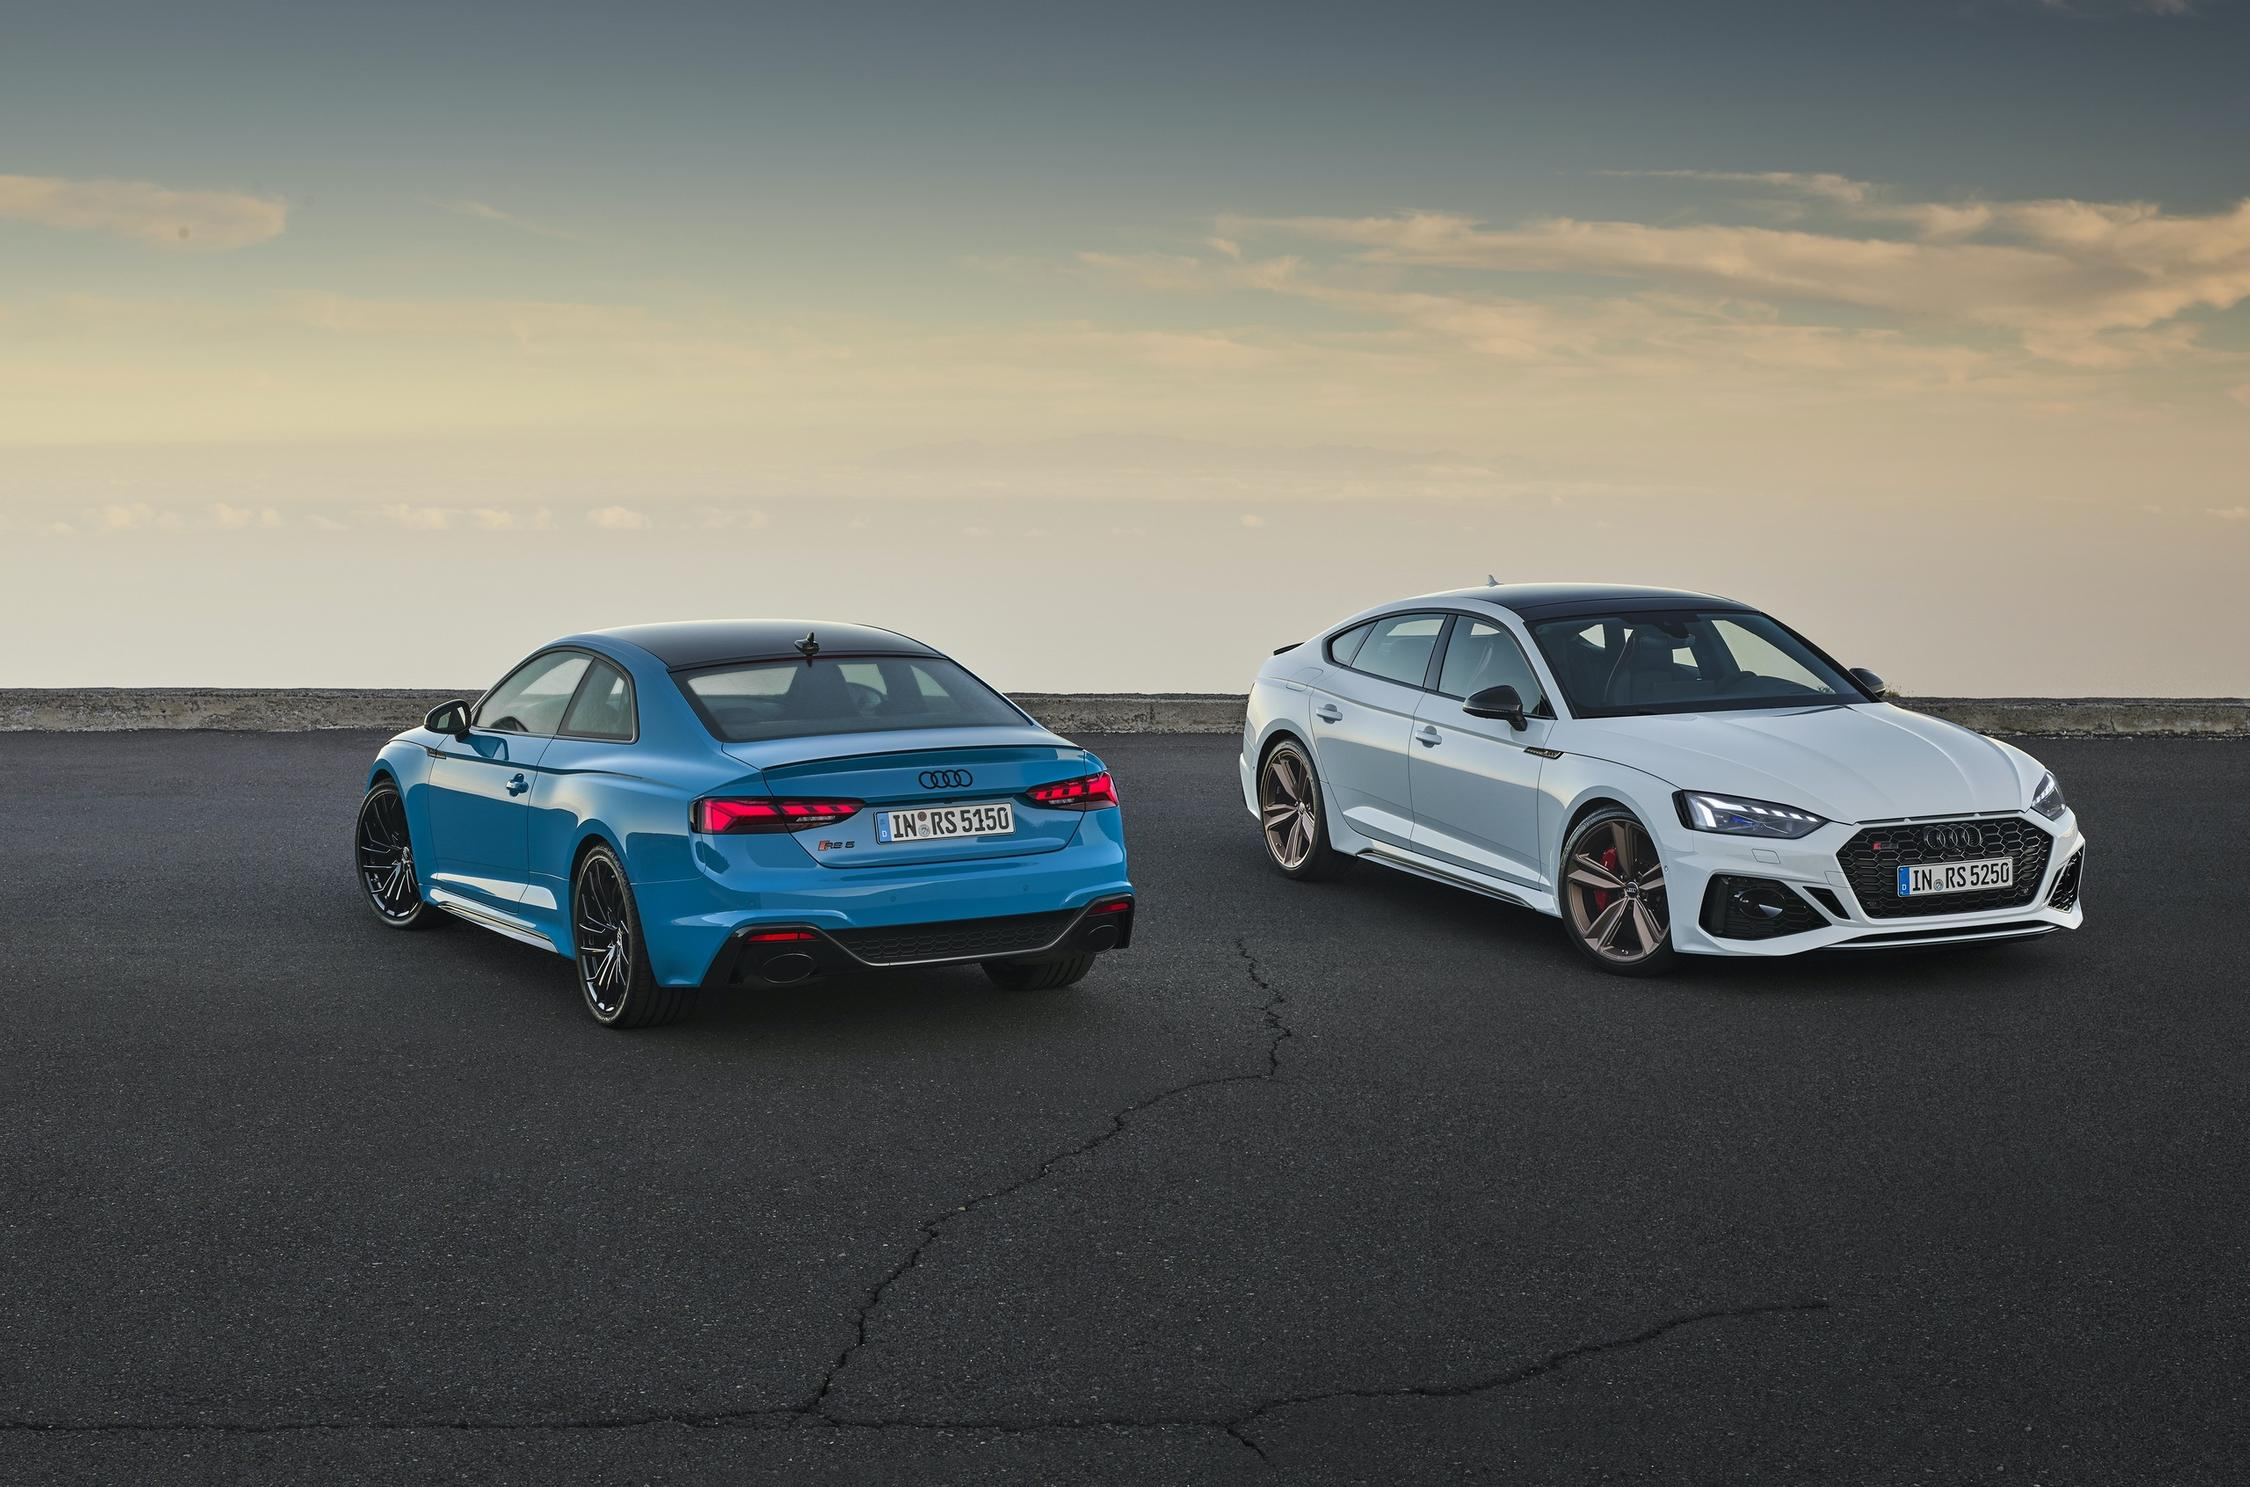 Following the launch of the updated A5 range three months ago, Audi has unveiled the facelifted RS5 and RS5 Sportback. These two are likely the last cars in the Audi RS performance range to get any updates this year.